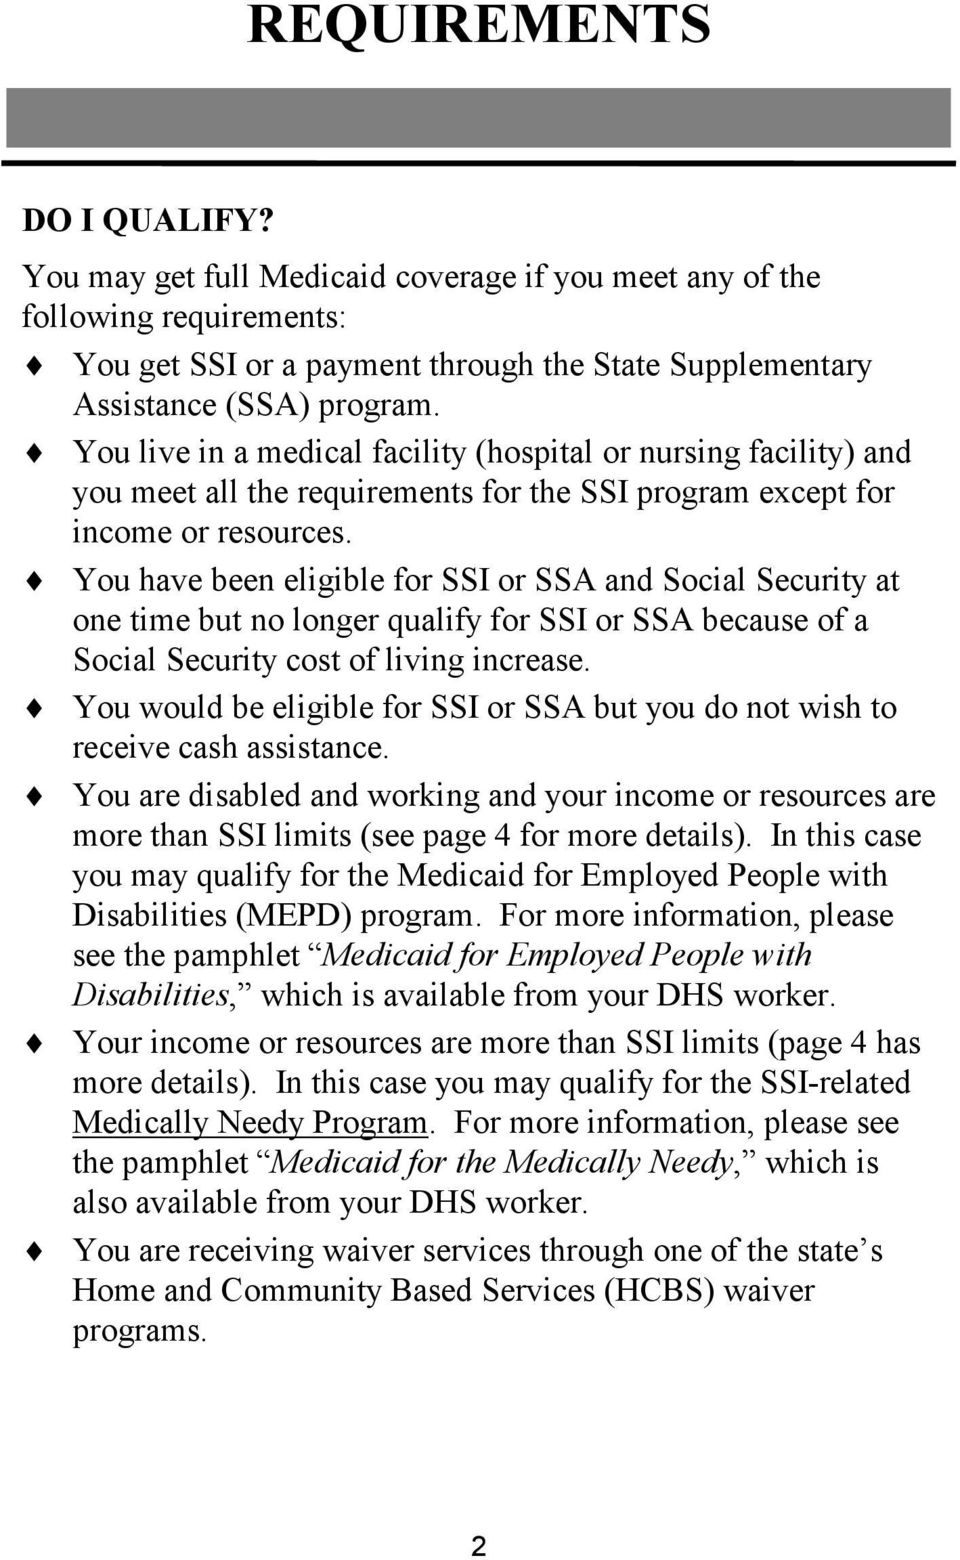 You have been eligible for SSI or SSA and Social Security at one time but no longer qualify for SSI or SSA because of a Social Security cost of living increase.